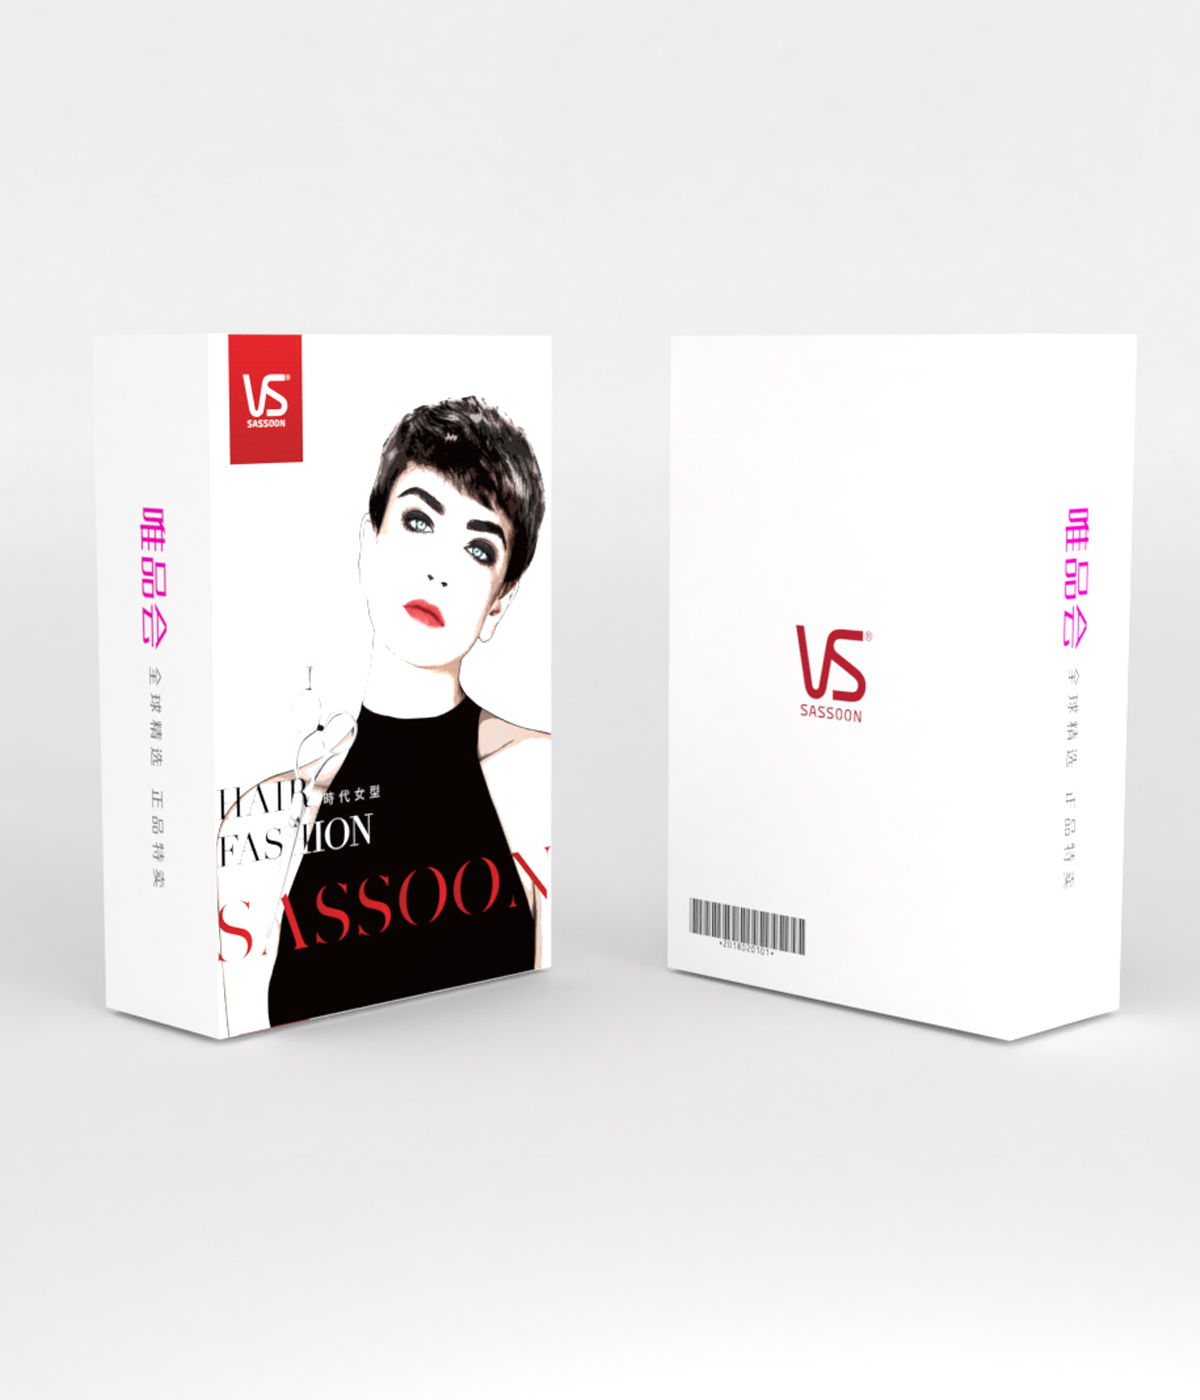 Vidal Sasson VIP Pack Design